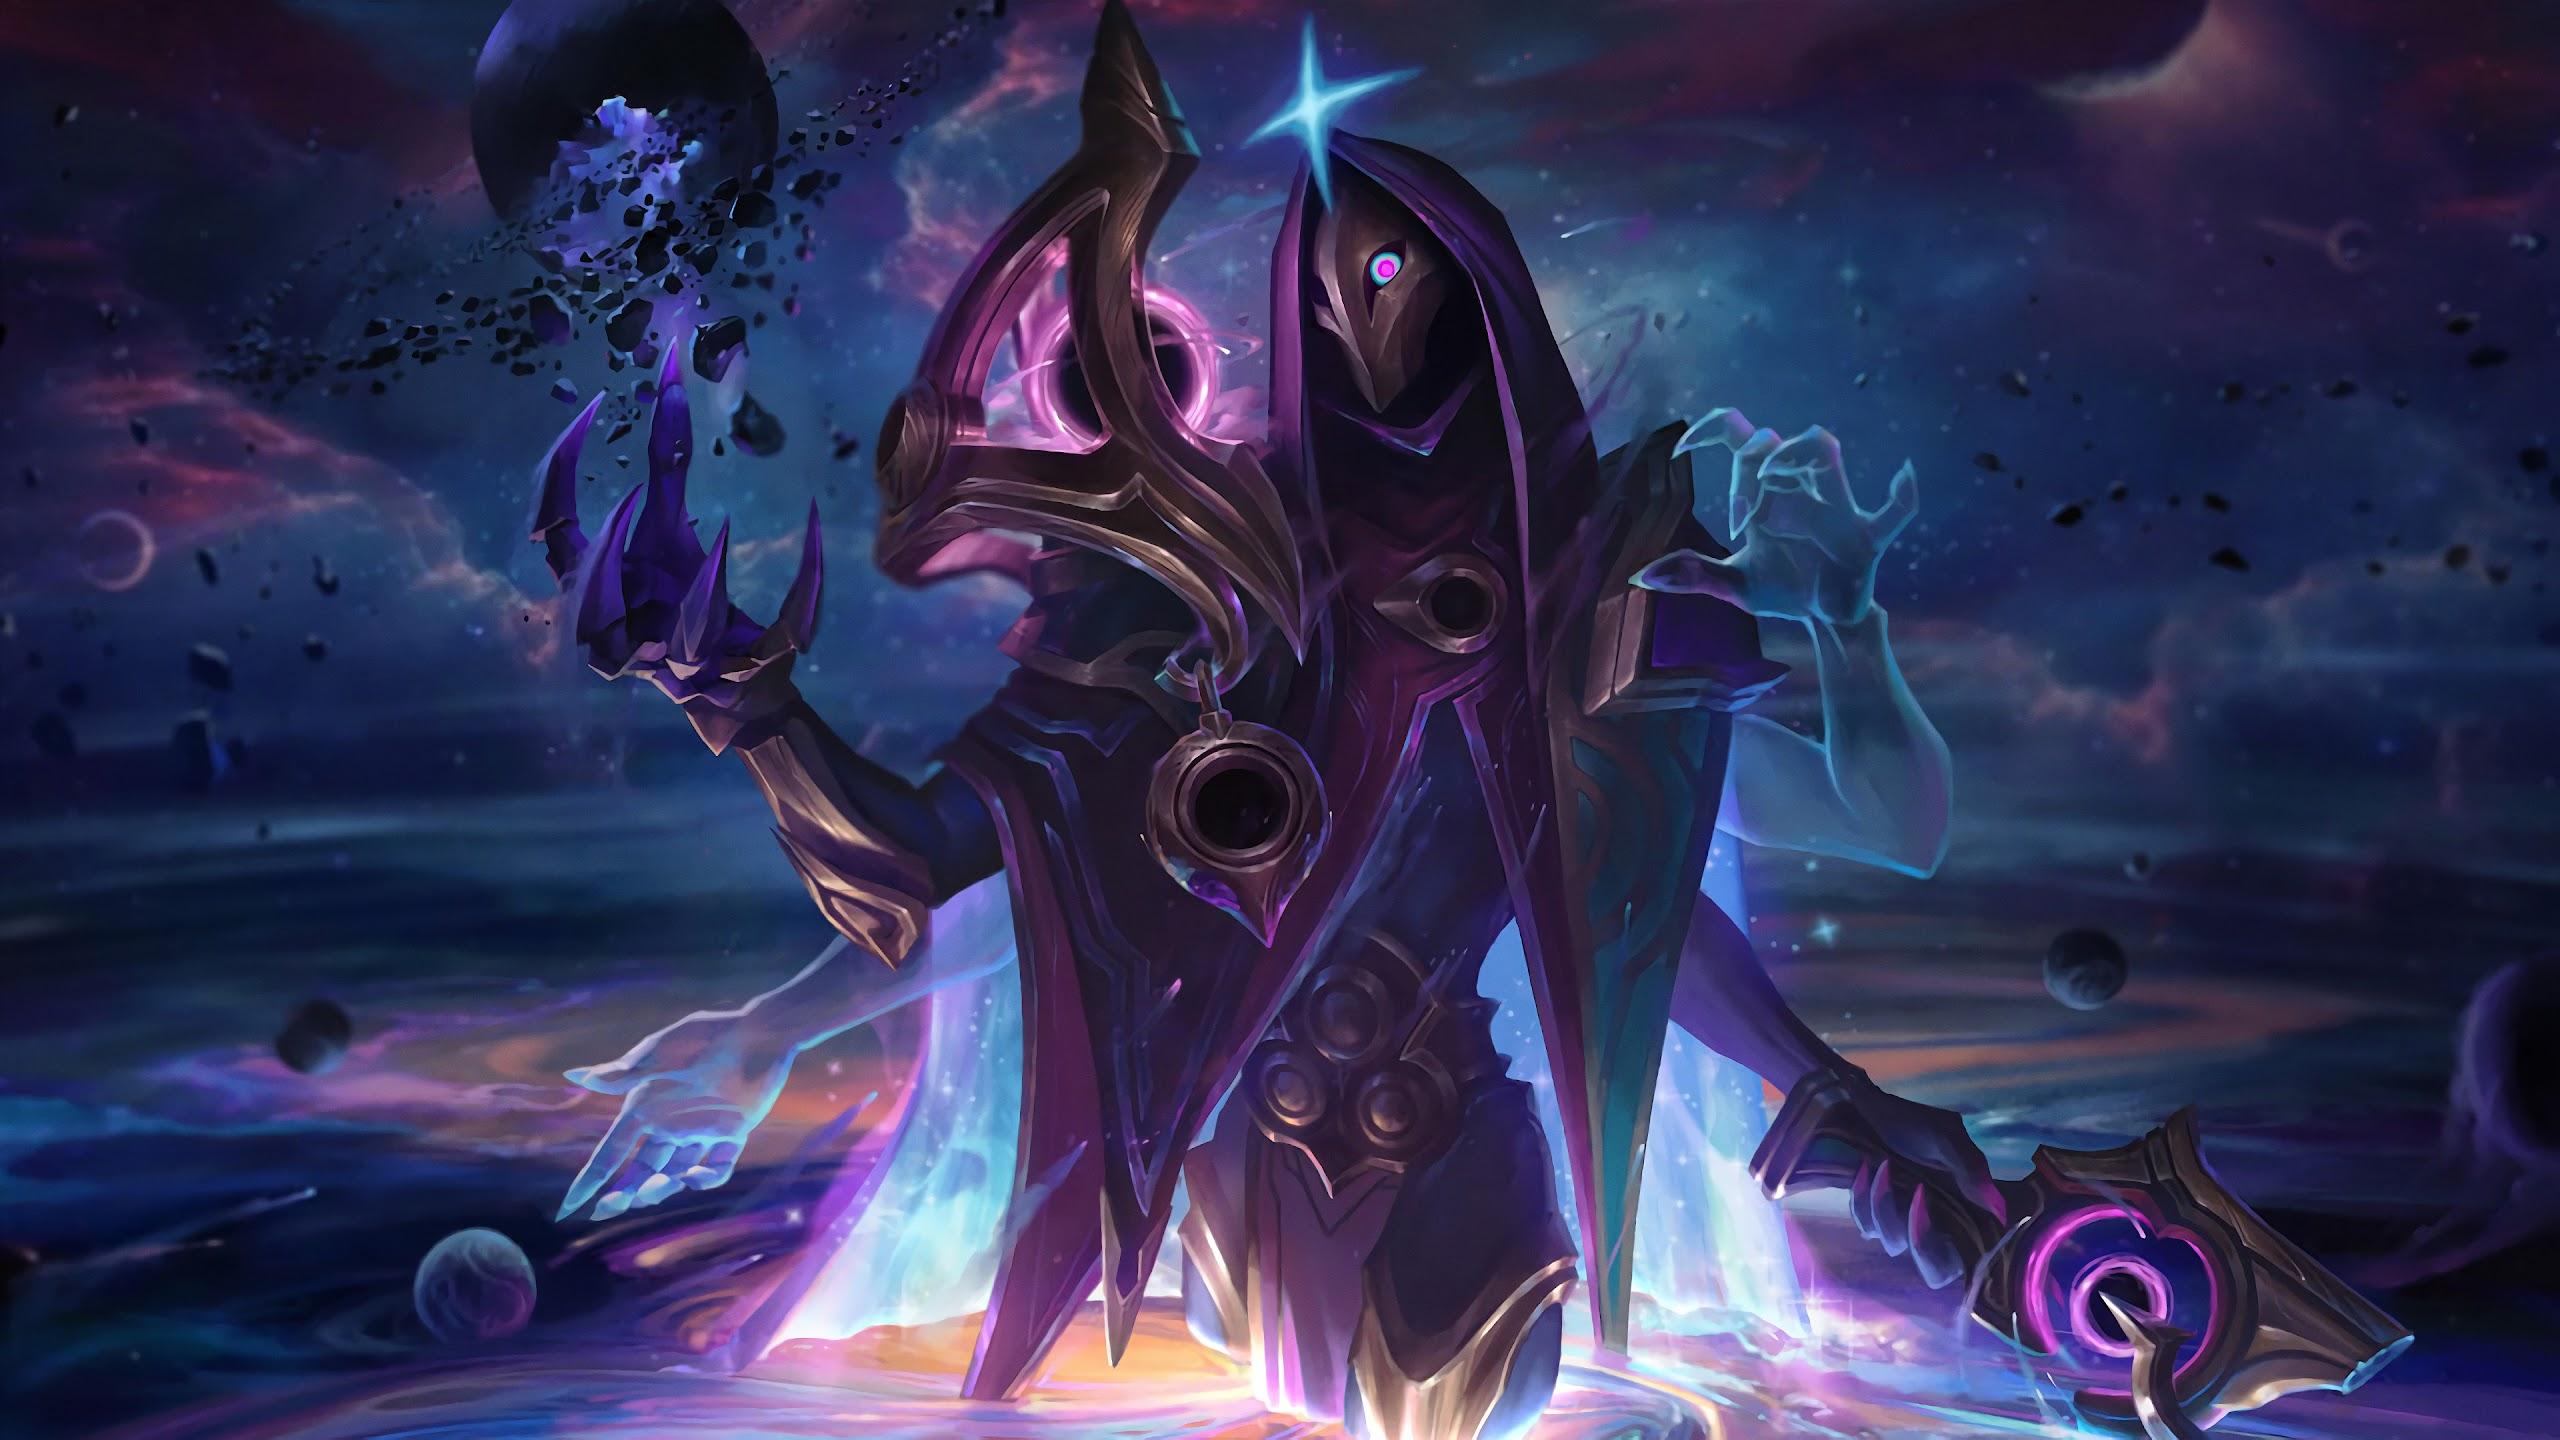 Dark Cosmic Jhin Splash Art Lol 4k Wallpaper 87